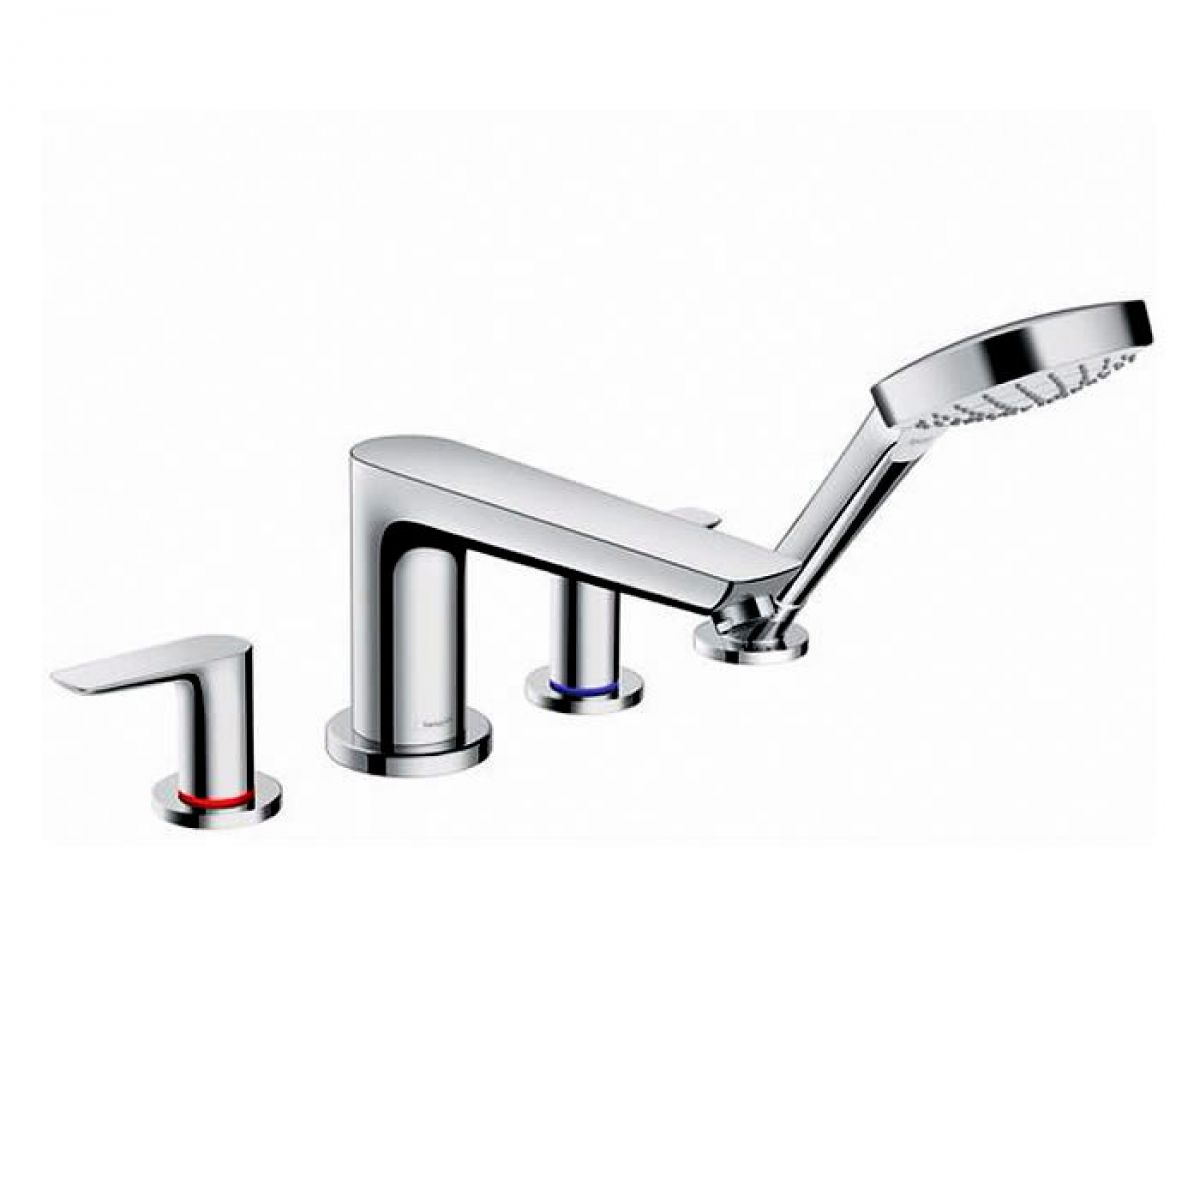 hansgrohe talis e 4 hole rim mounted bath mixer with. Black Bedroom Furniture Sets. Home Design Ideas